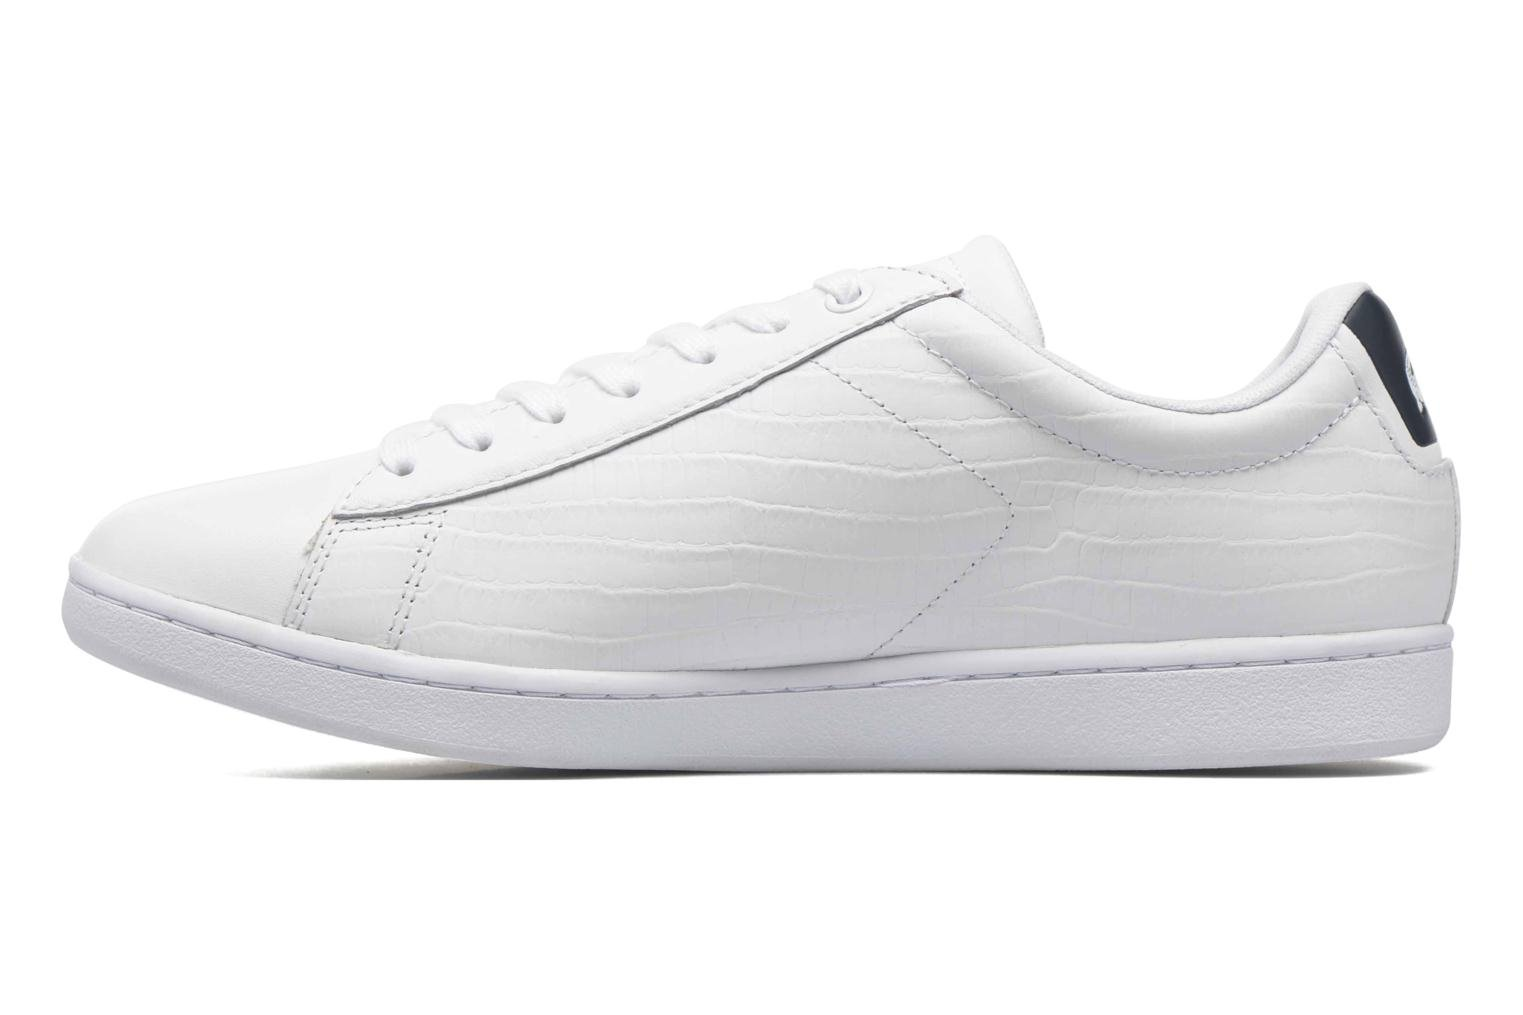 Baskets Lacoste Carnaby Evo G316 7 Spm Blanc vue face